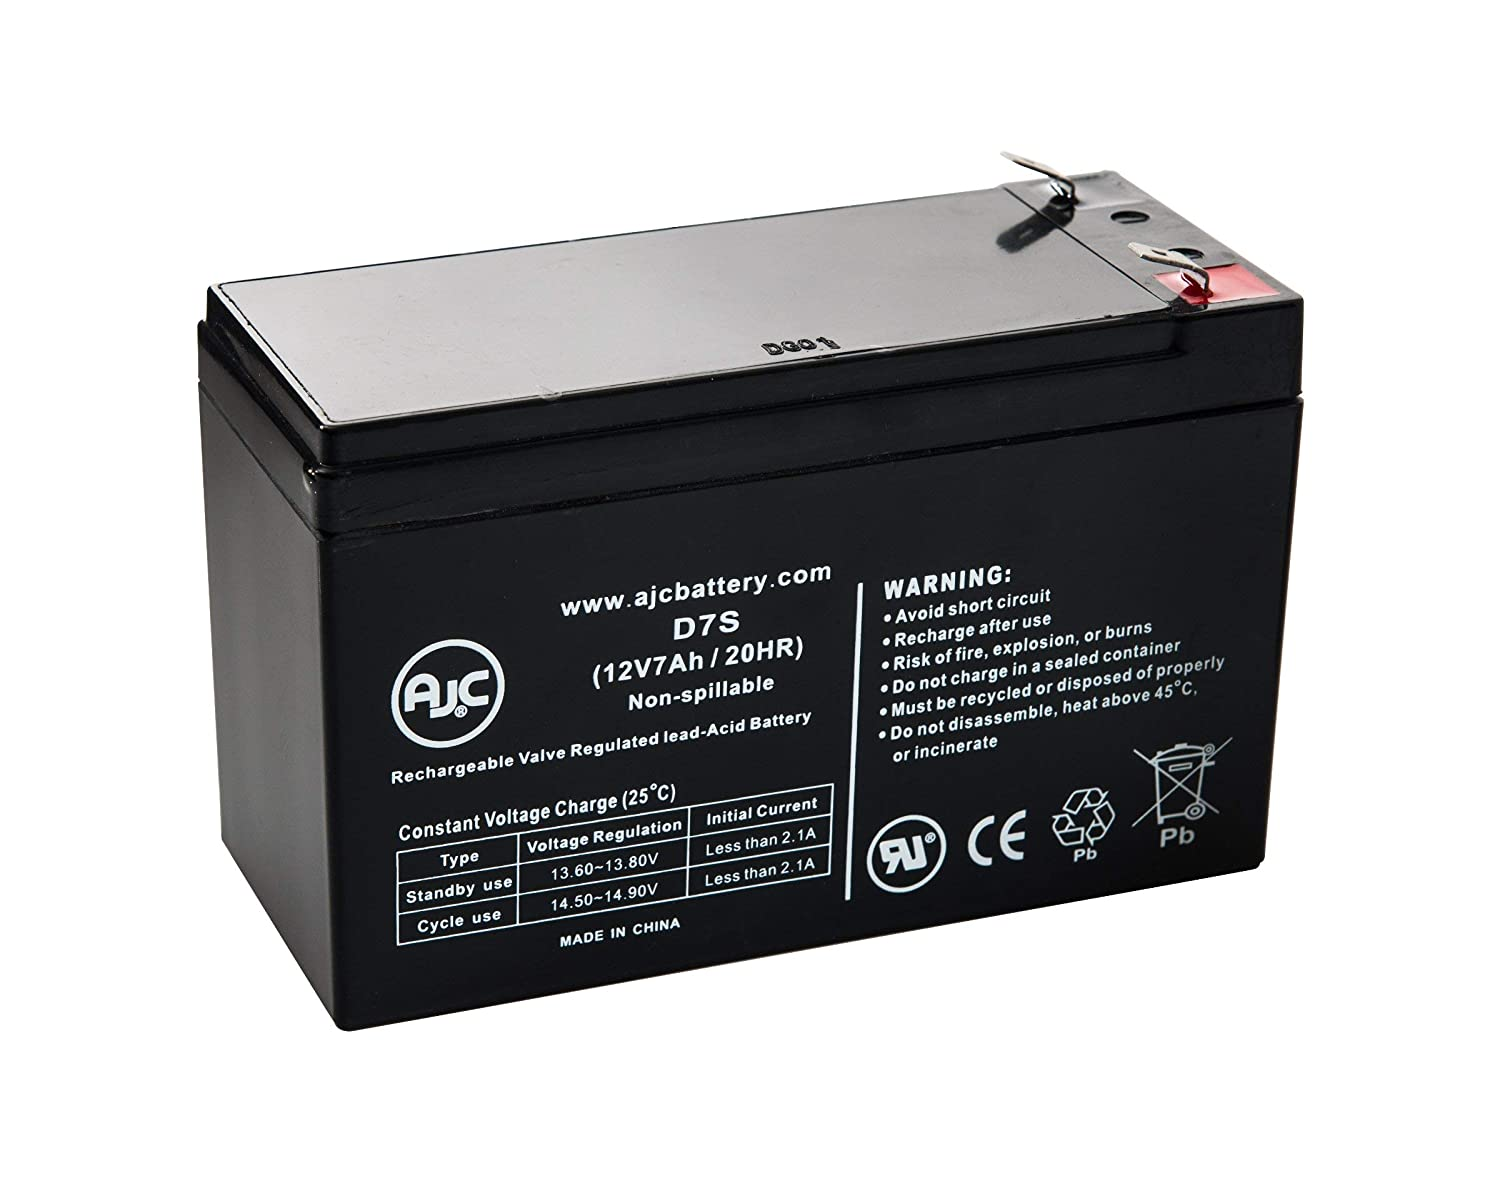 Enersys NP7-12A 12V 7Ah Sealed Lead Acid Battery - This is an AJC Brand Replacement AJC Battery